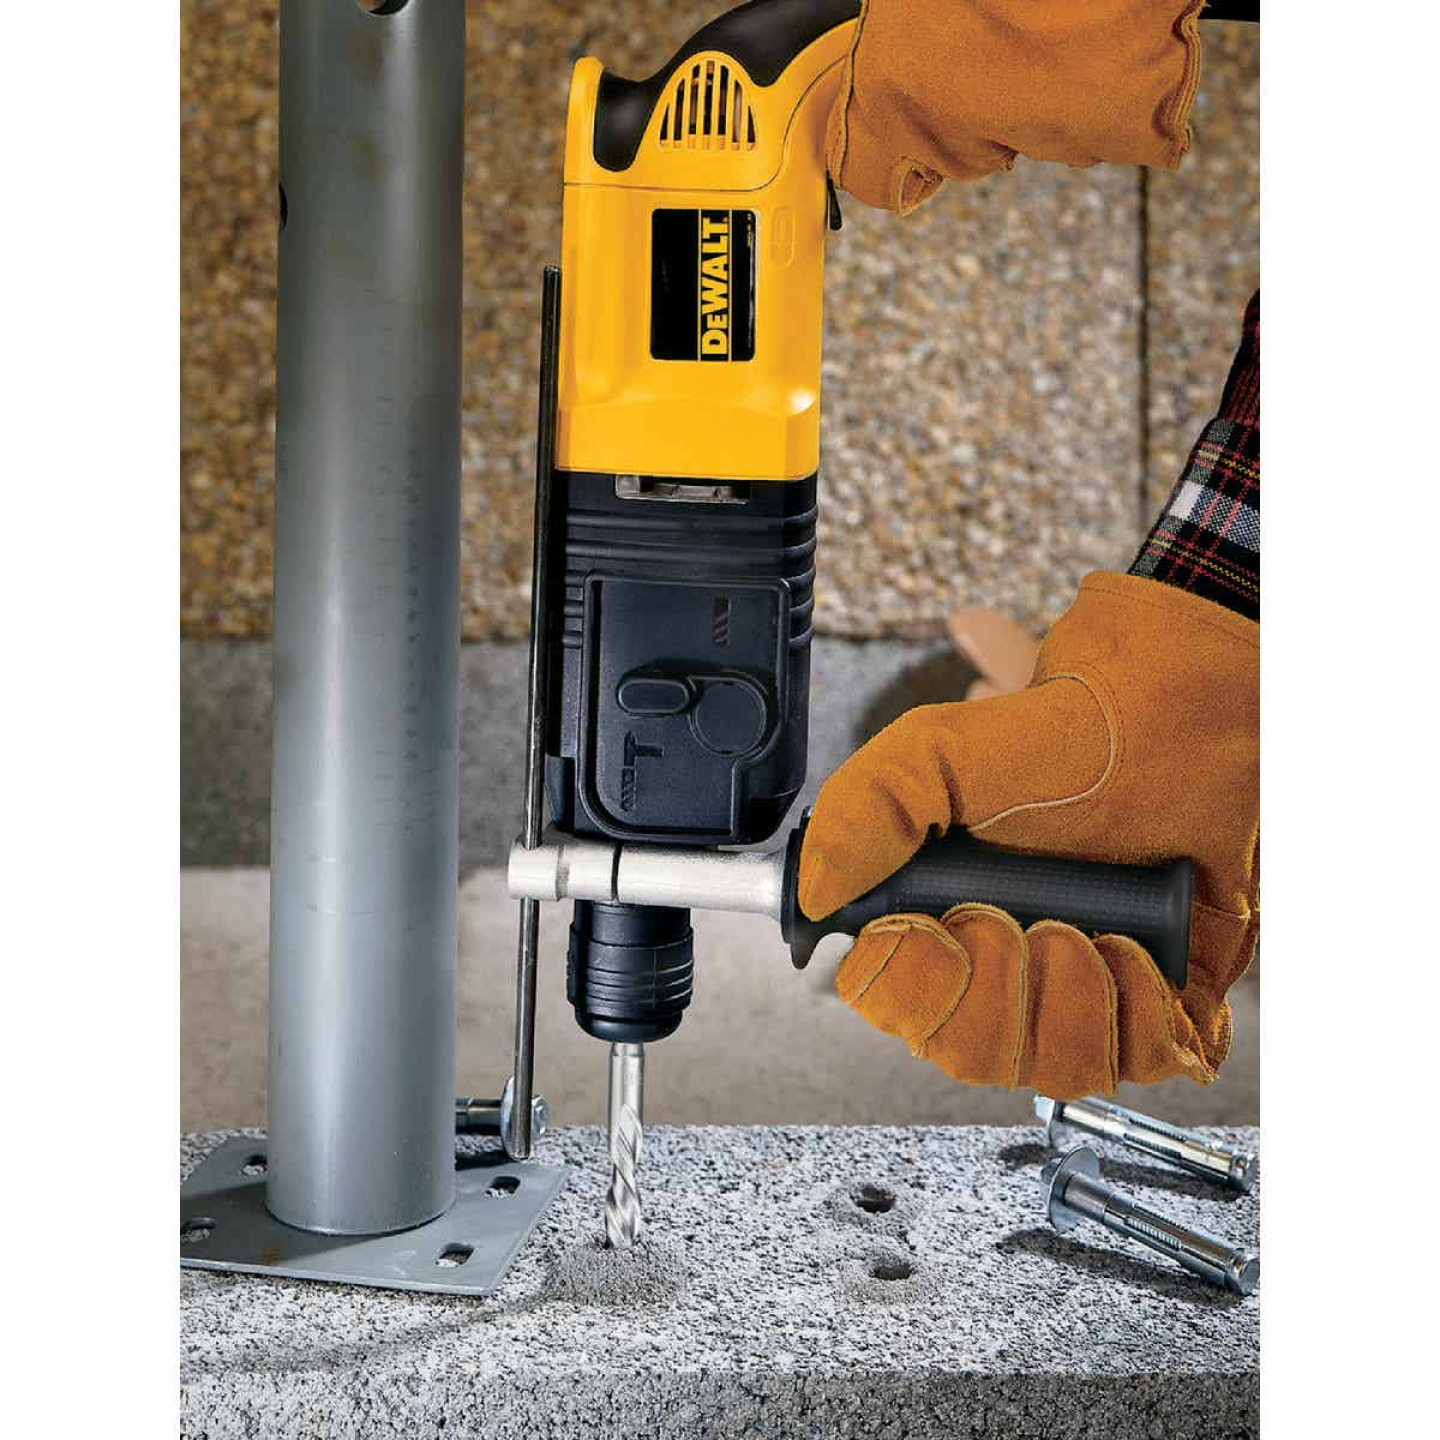 DeWalt SDS-Plus 1/2 In. x 6 In. 2-Cutter Rotary Hammer Drill Bit Image 2